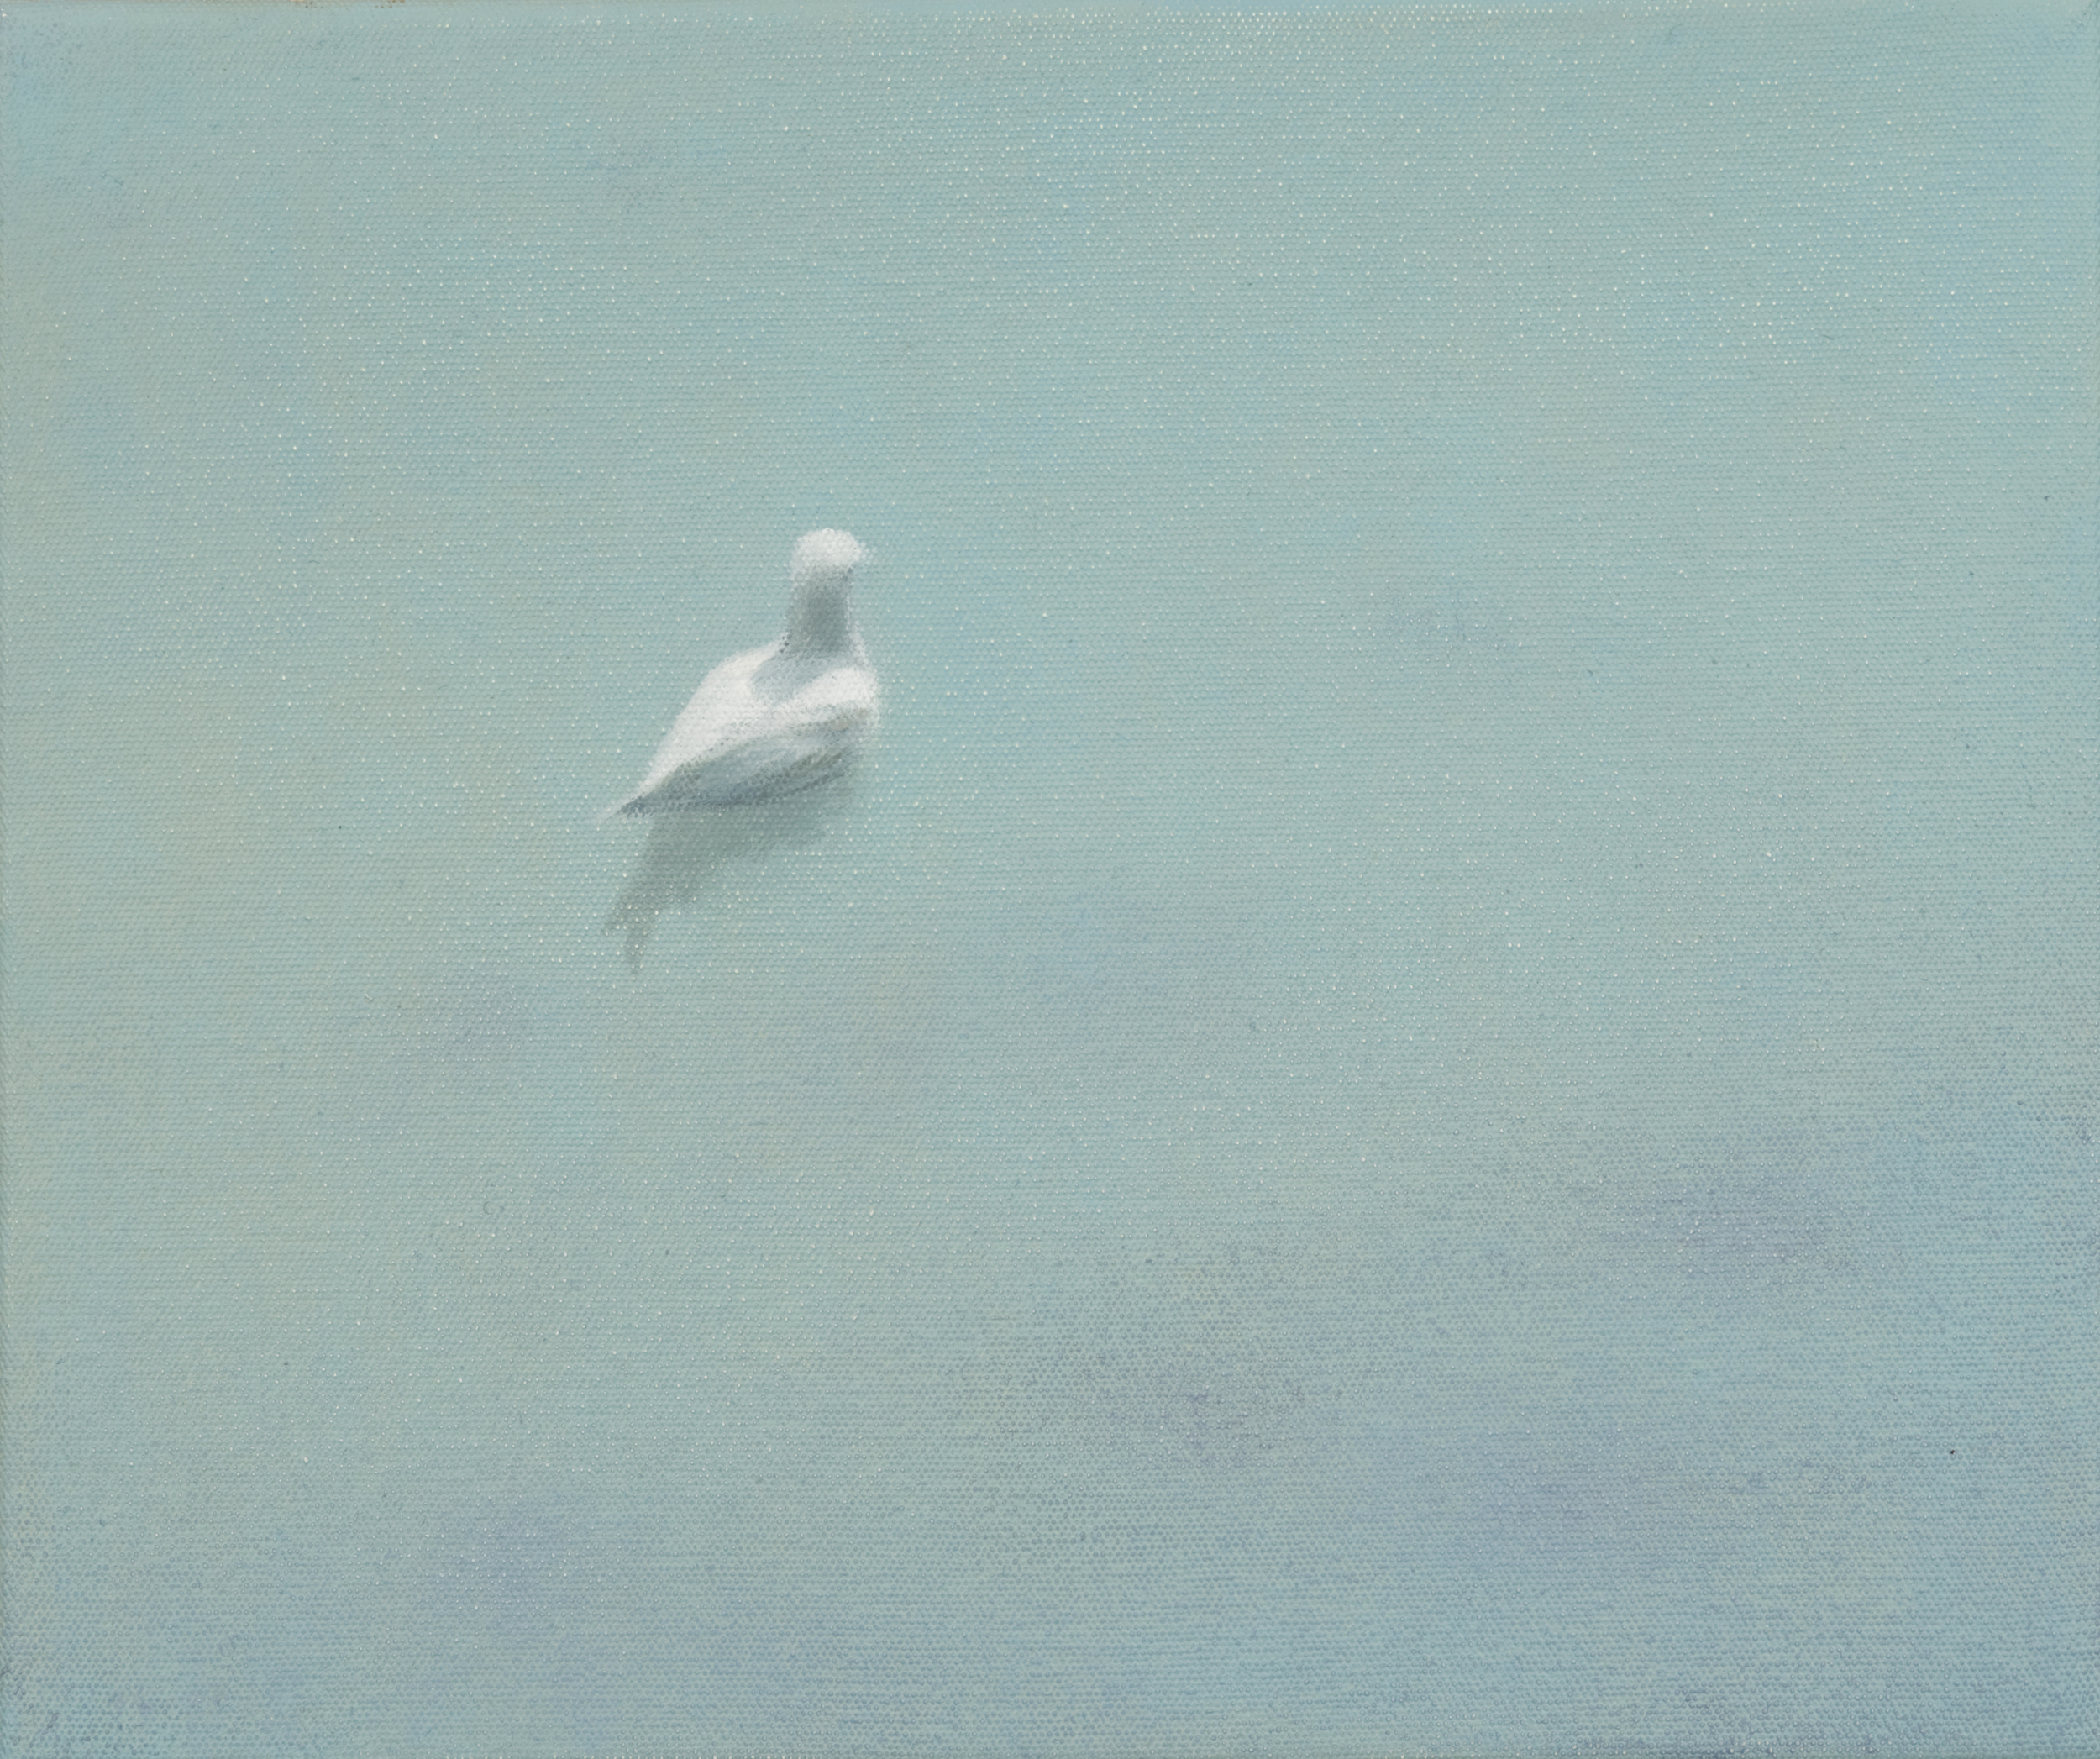 Lone gull swimming